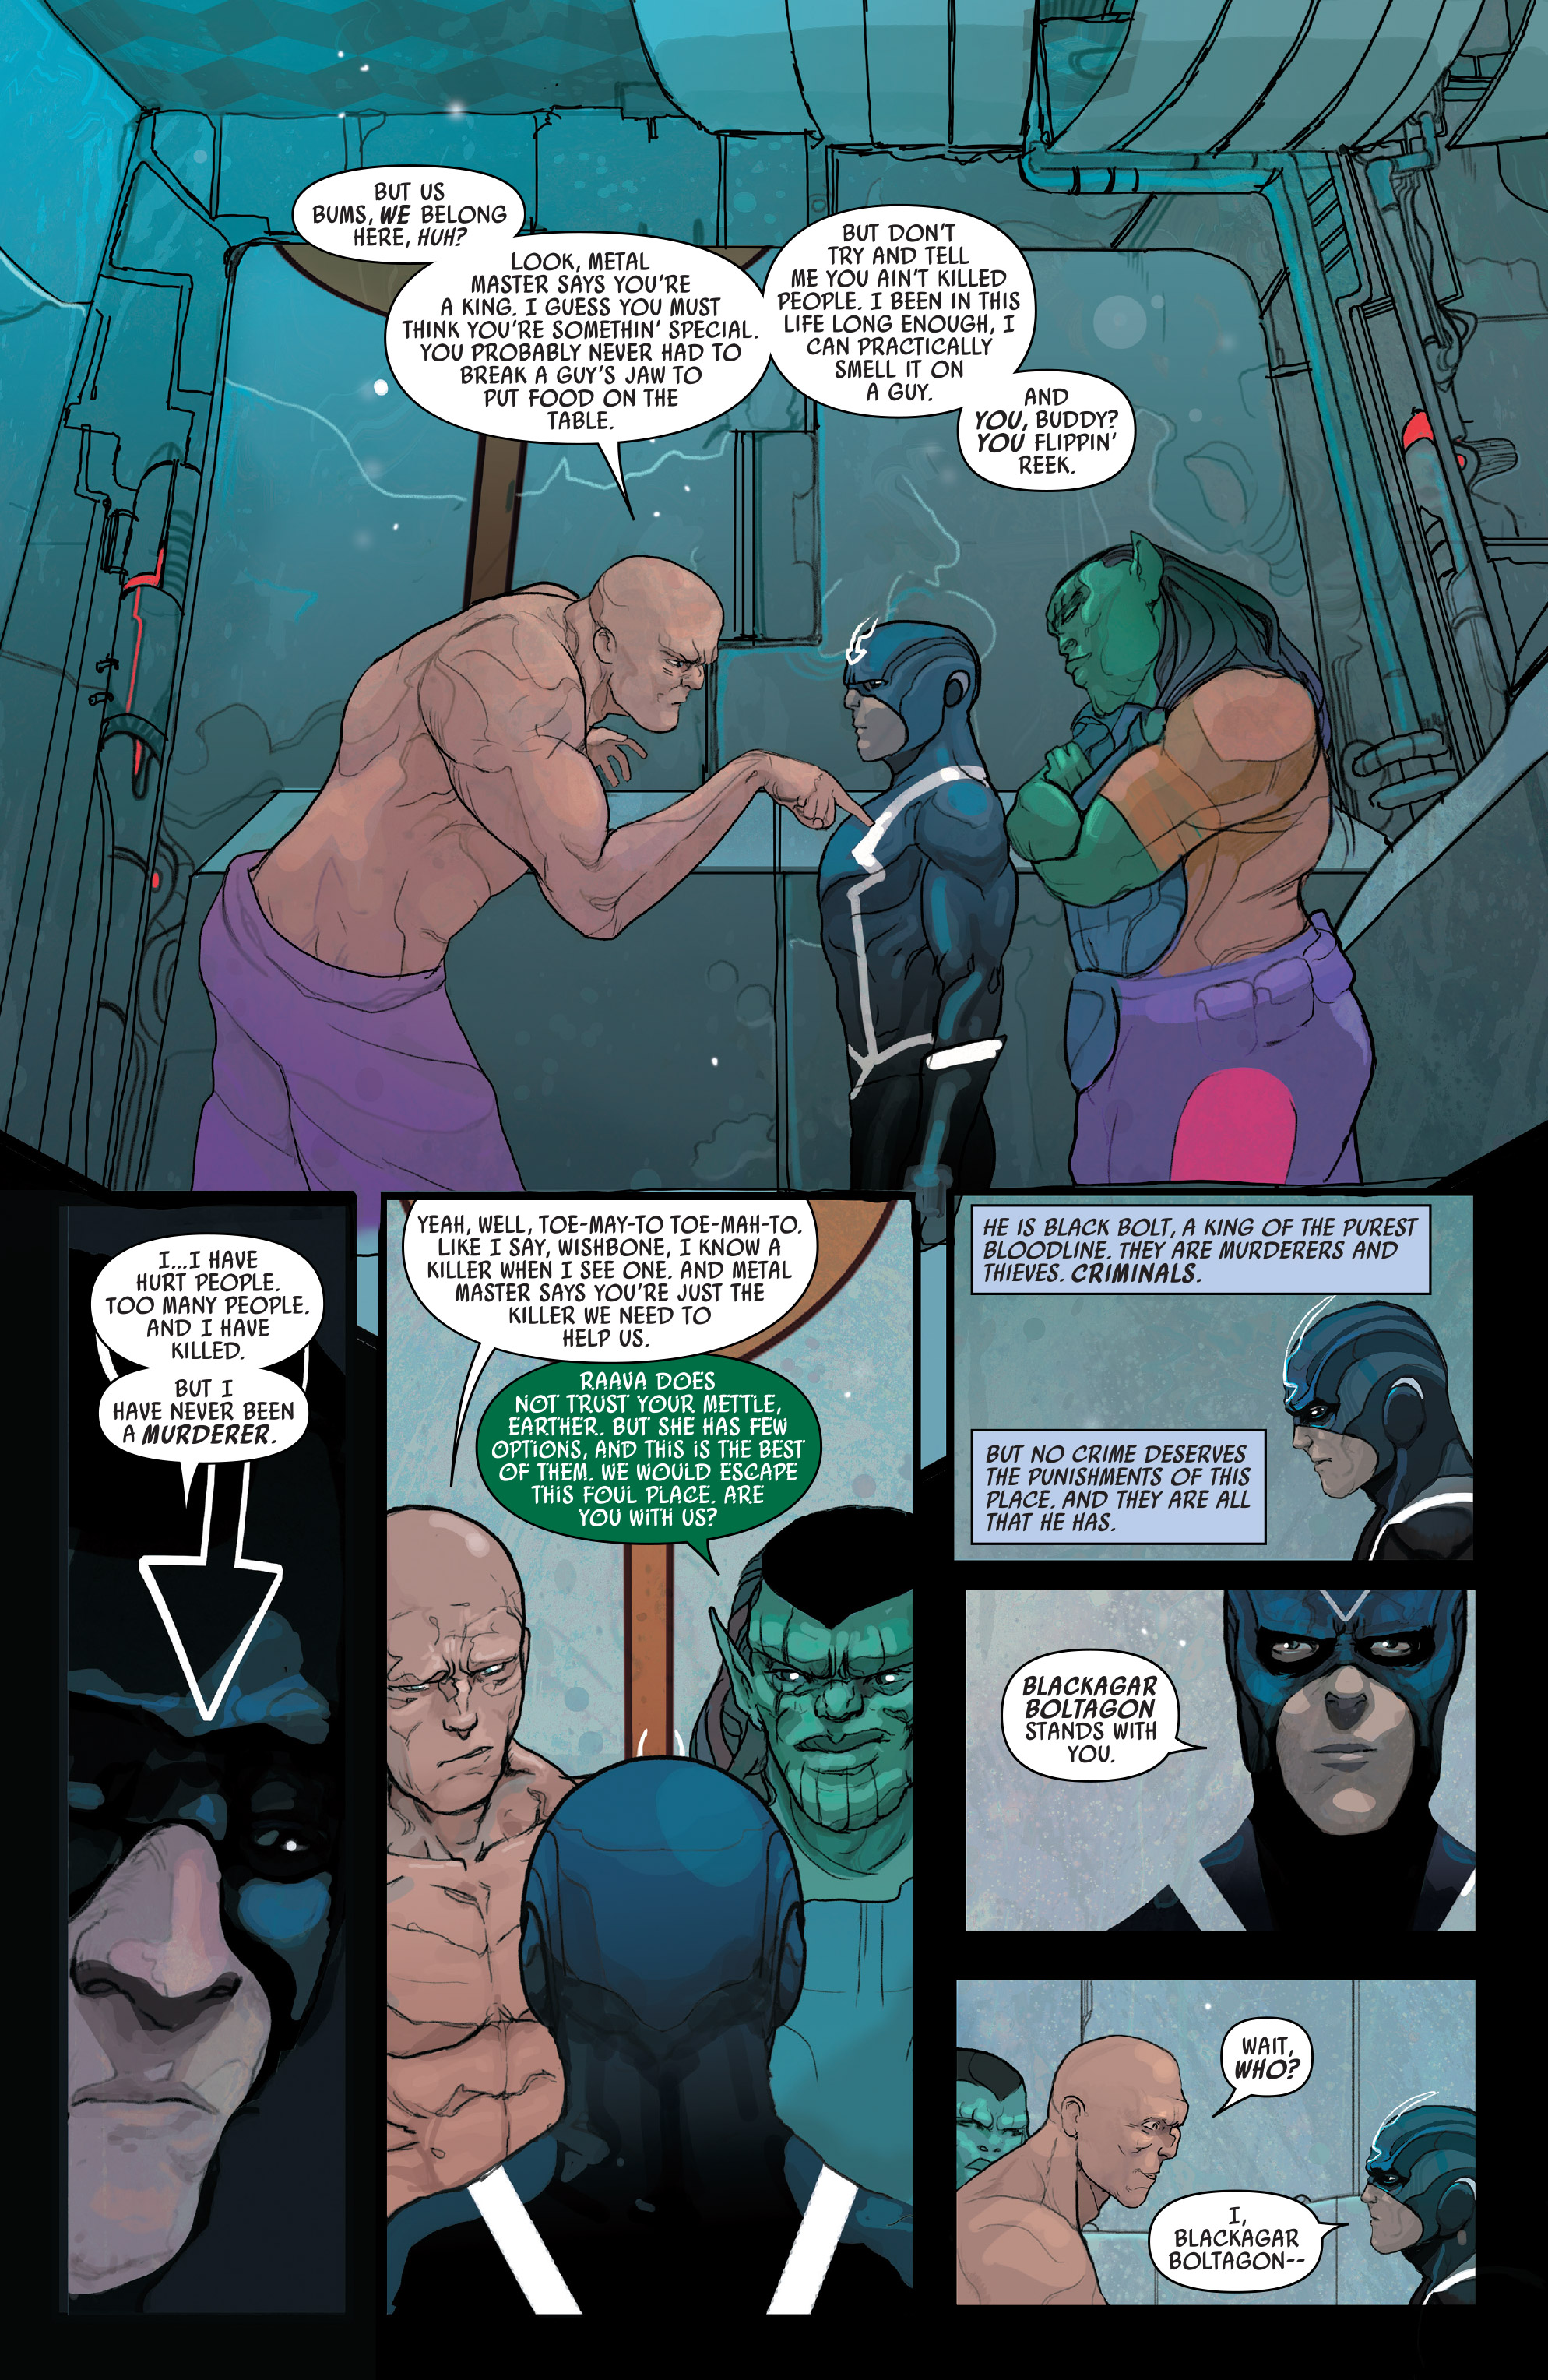 Read online Black Bolt comic -  Issue #2 - 20